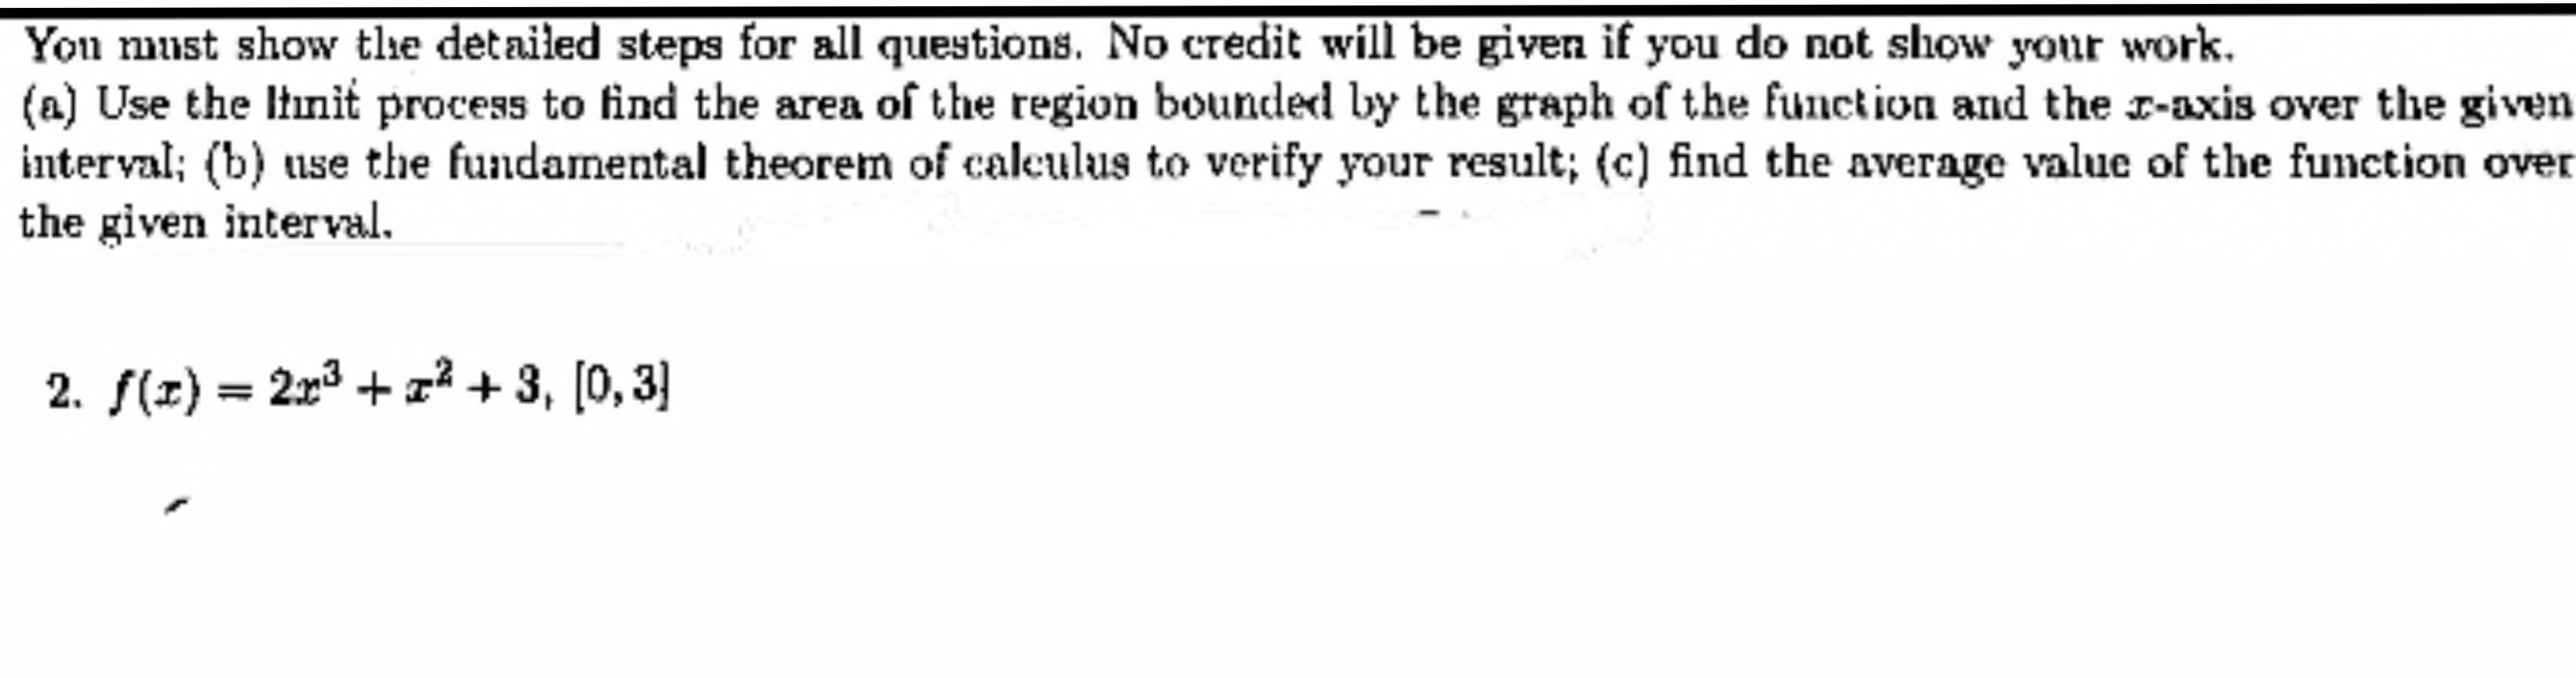 You must show tlhe detailed steps for all questions. No credit will be given if you do not show your work (a) Use the Itnit process to find the area of the region bounded by the graph of the function and the r-axis over the given interval; (b) use the fundamental theorem of caleulus to verify your result; (c) find the average value of the function over the given interval 2. f(z) 2r3 +2 +3, [0,3